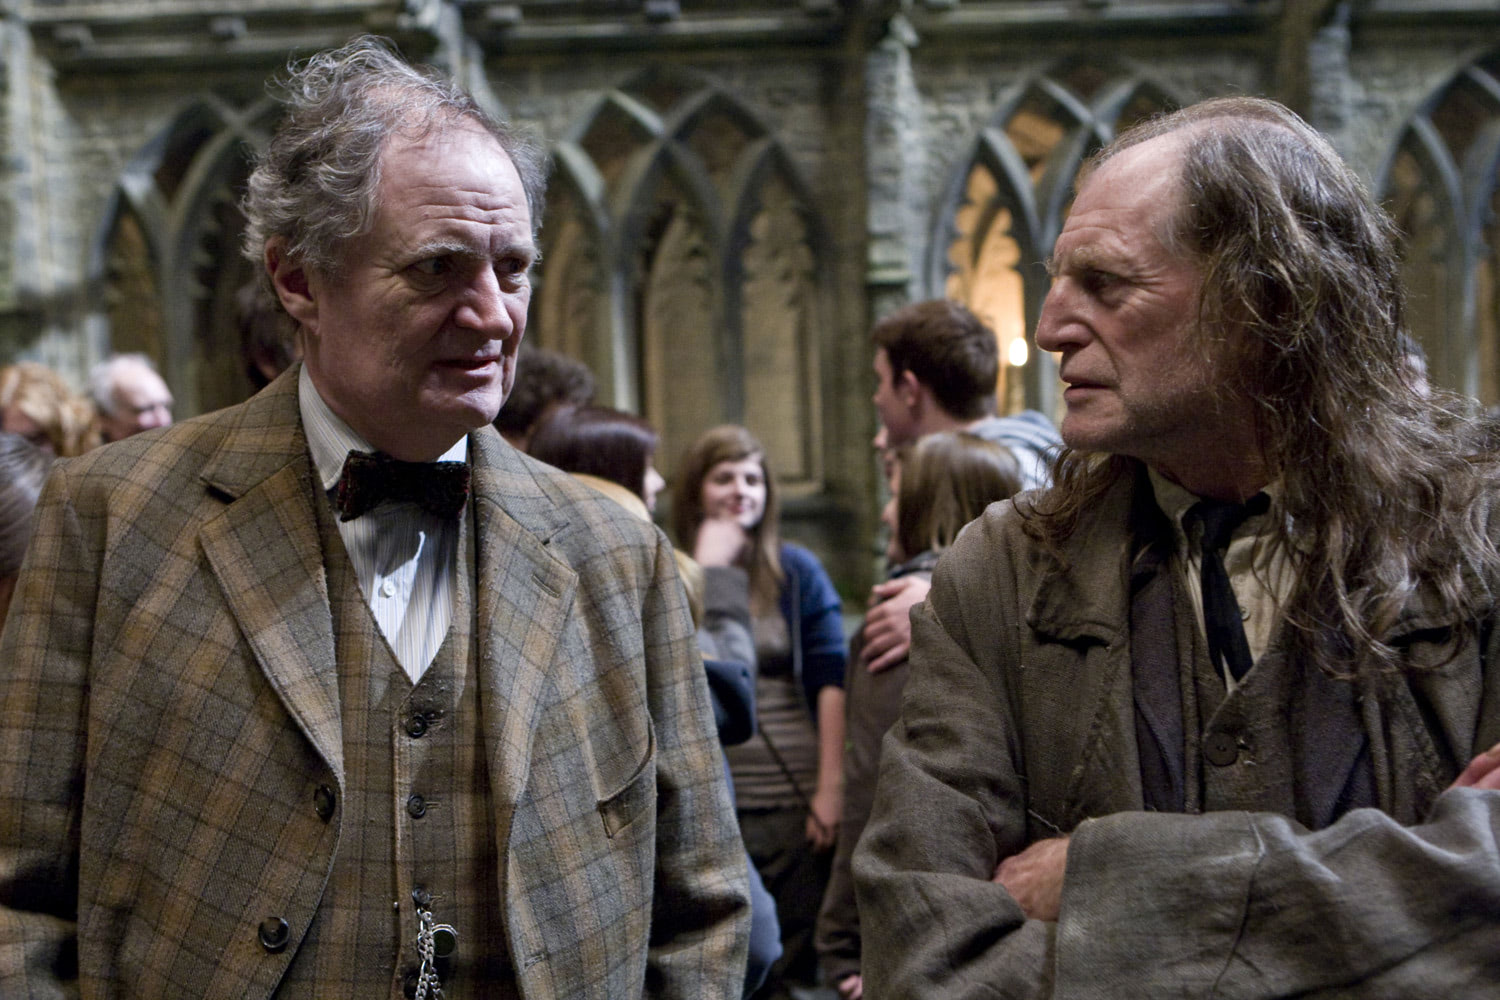 Slughorn and Filch in the grounds